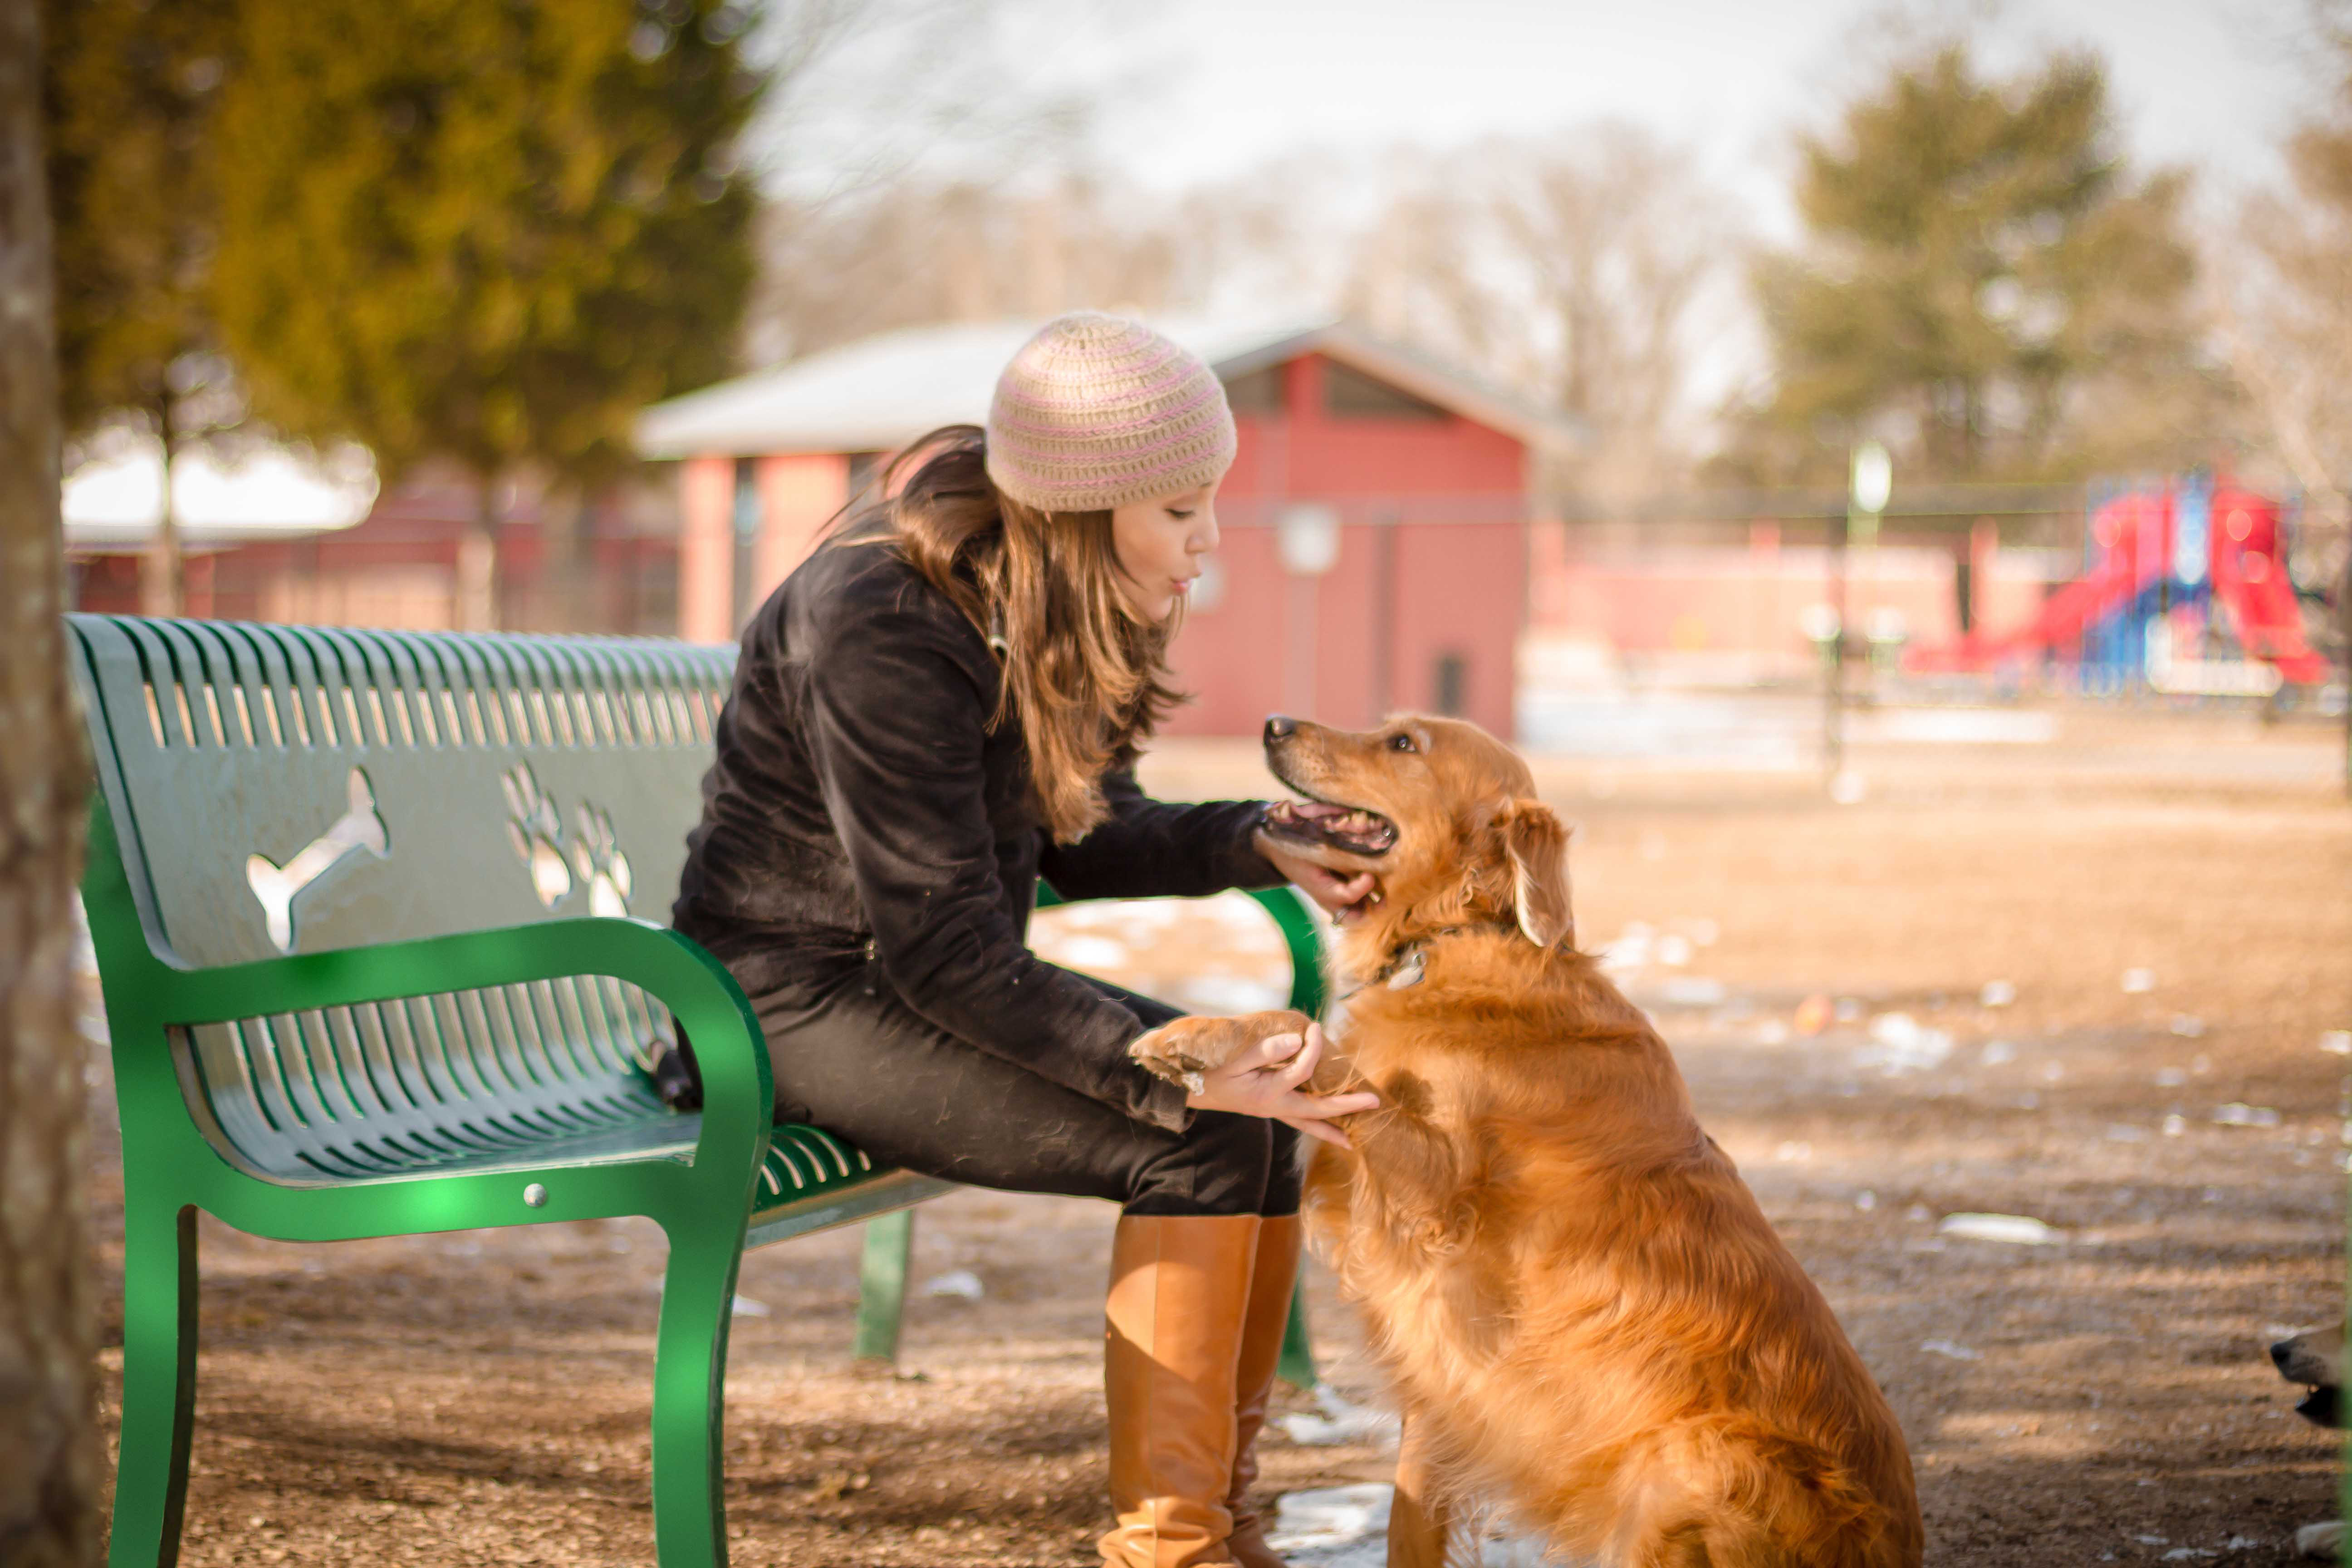 Lady petting dog sitting on Green Pooch Perch Bench Image